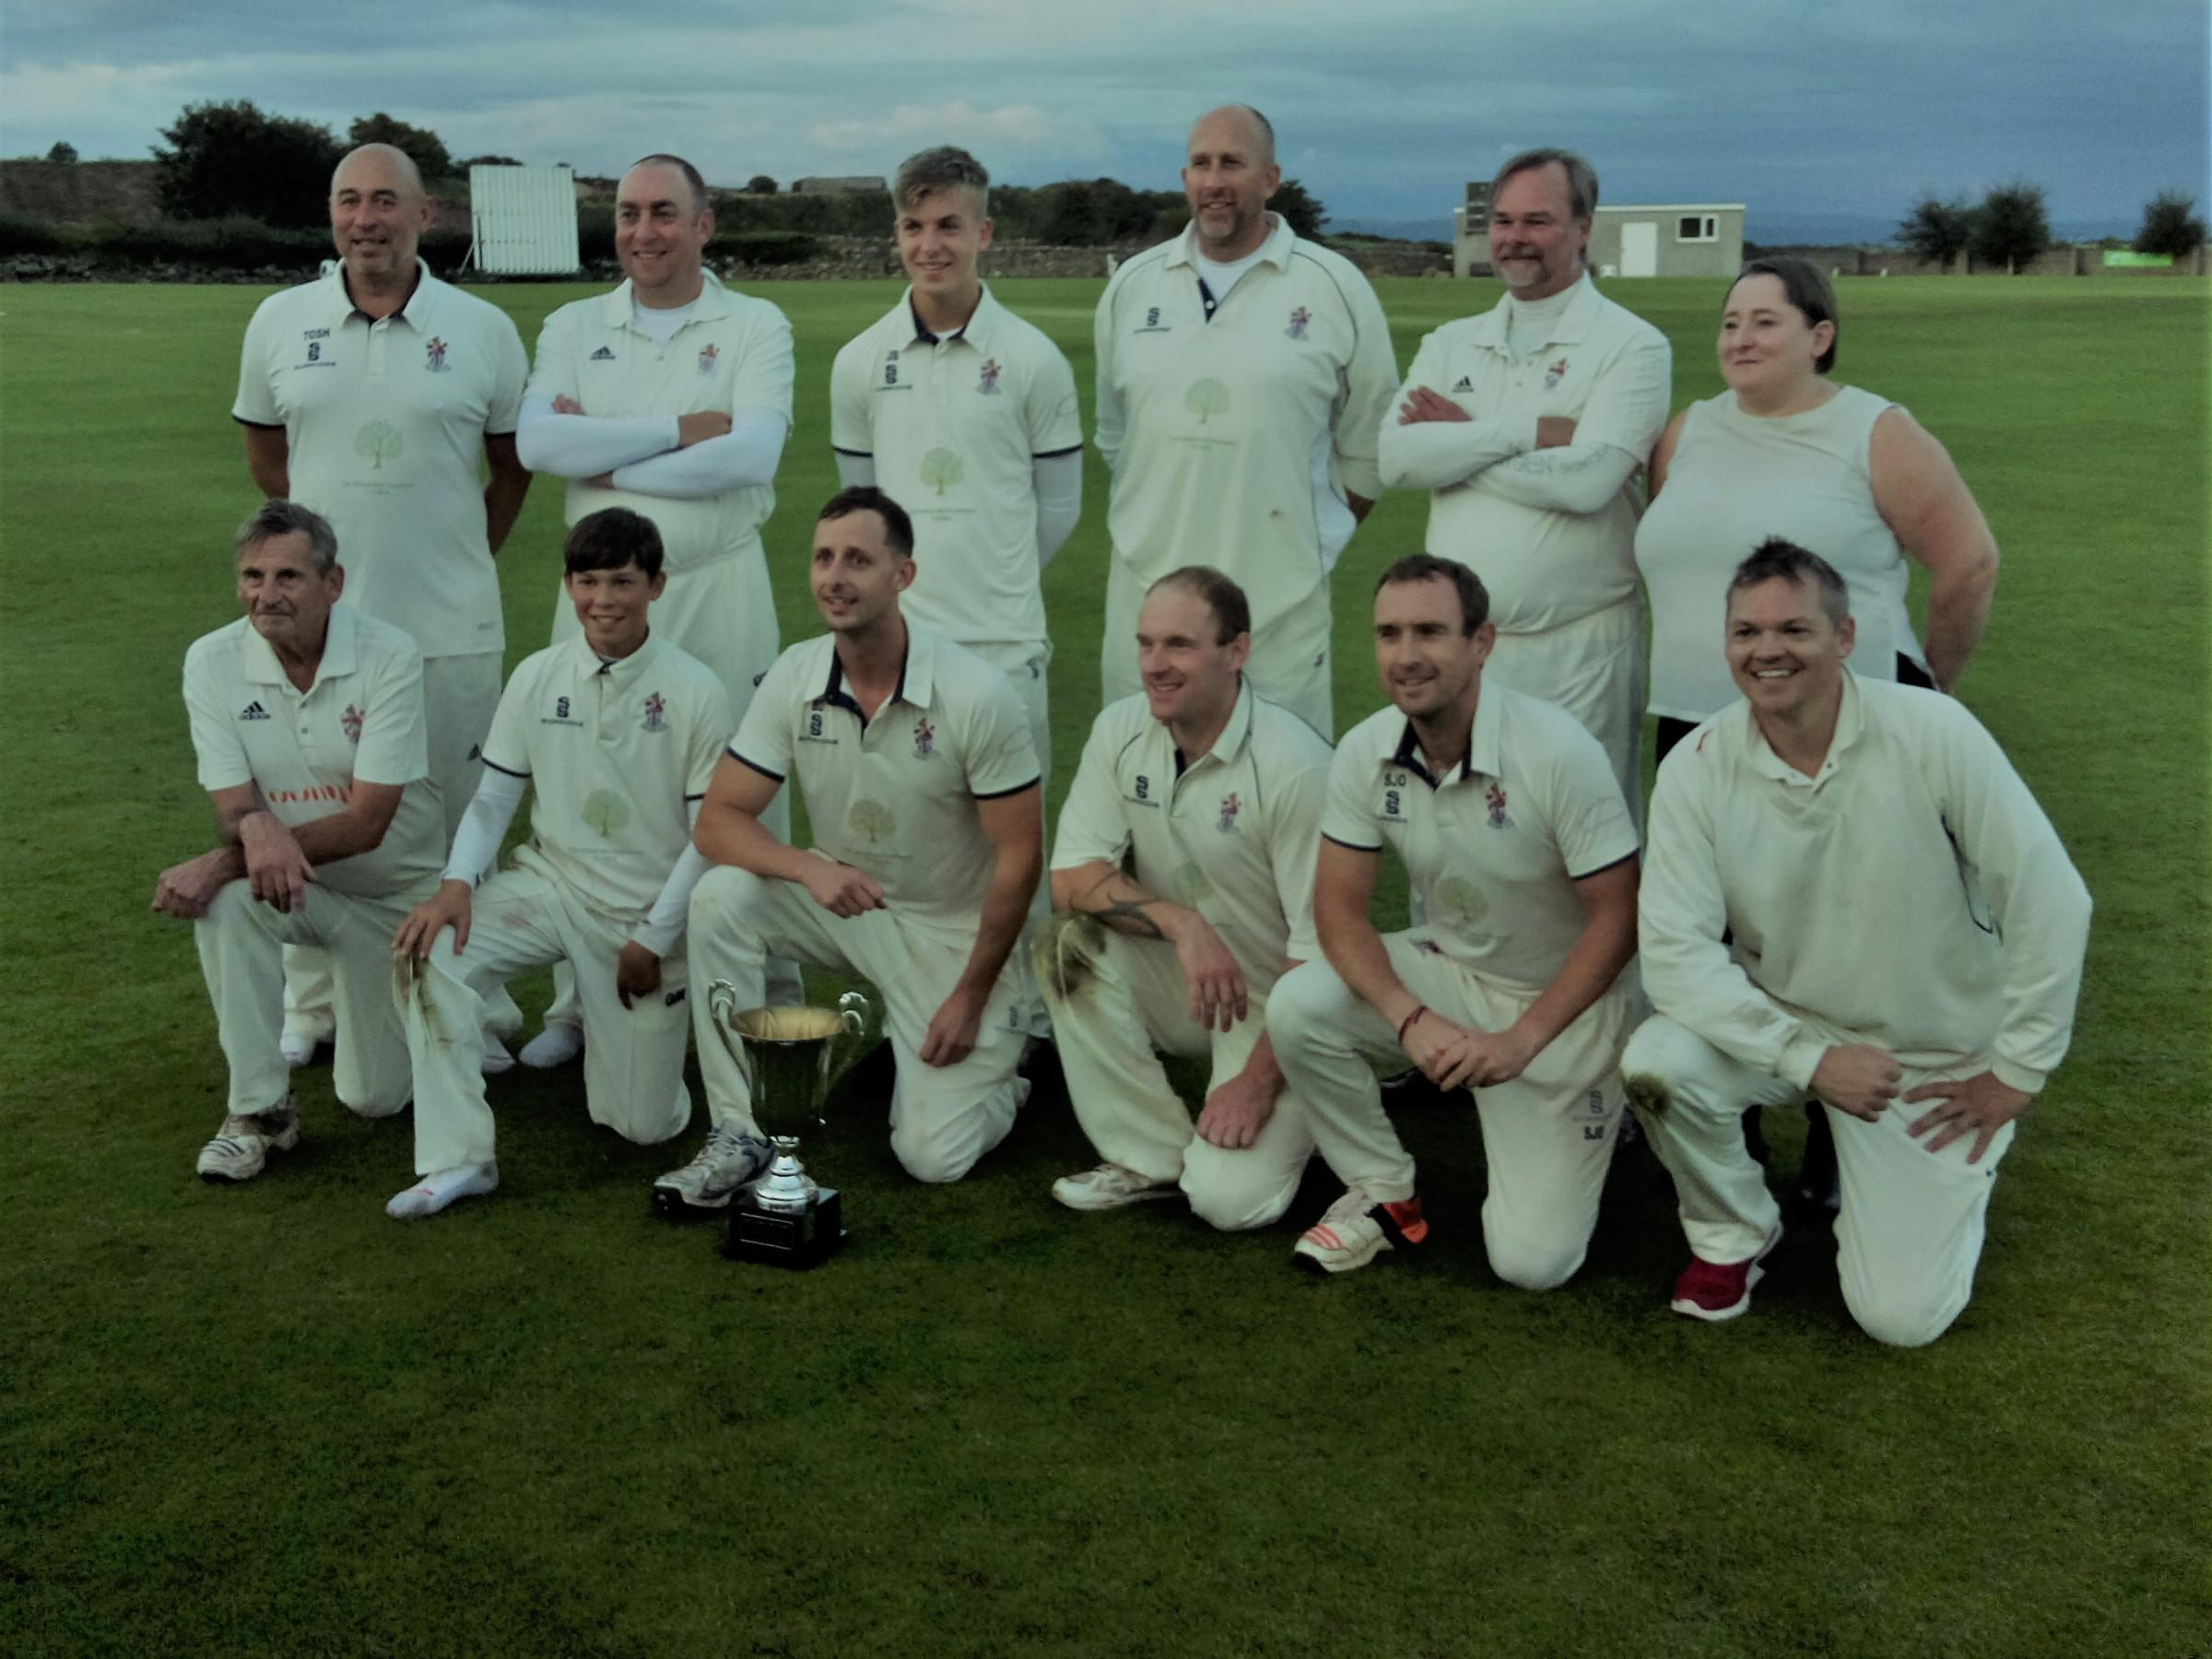 History: Ulverston won this year's Marsden Cup